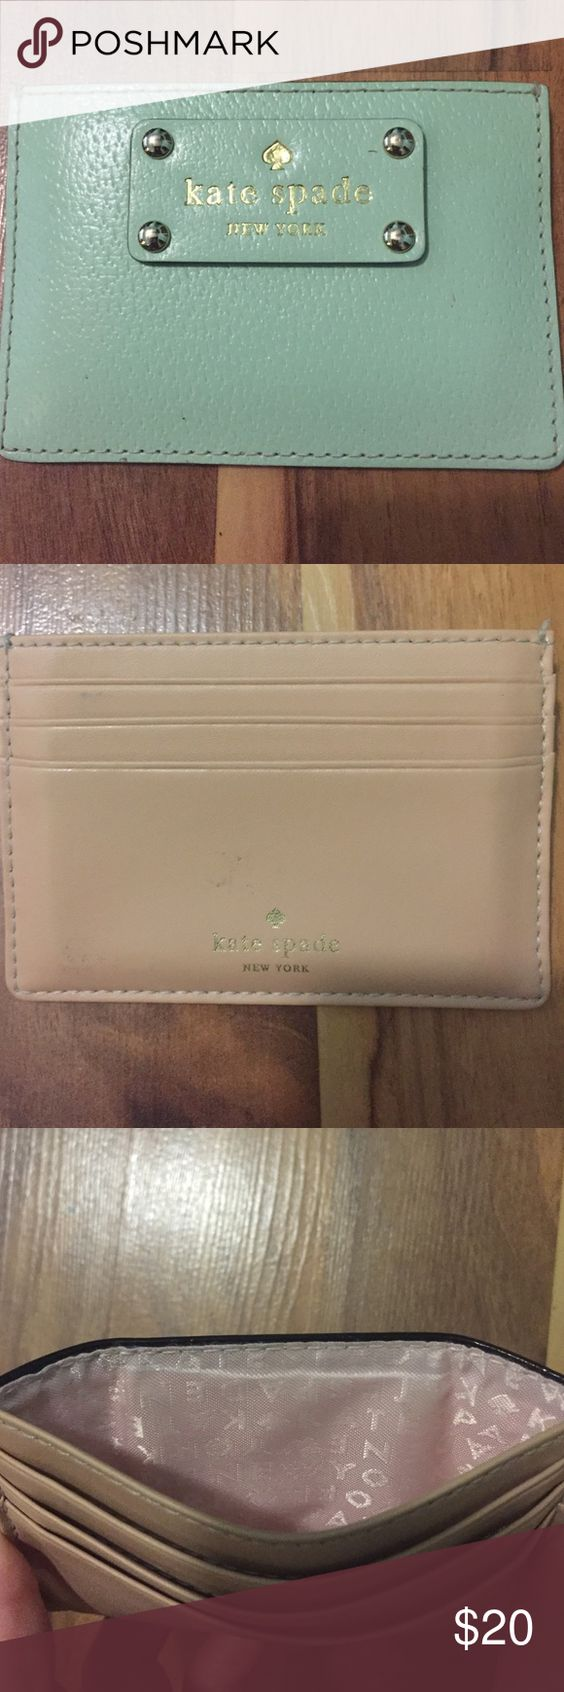 kate spade wallet gently used, small kate spade credit card pouch. light blue, good condition, on soft stain - easily removable before being shipped kate spade Bags Wallets